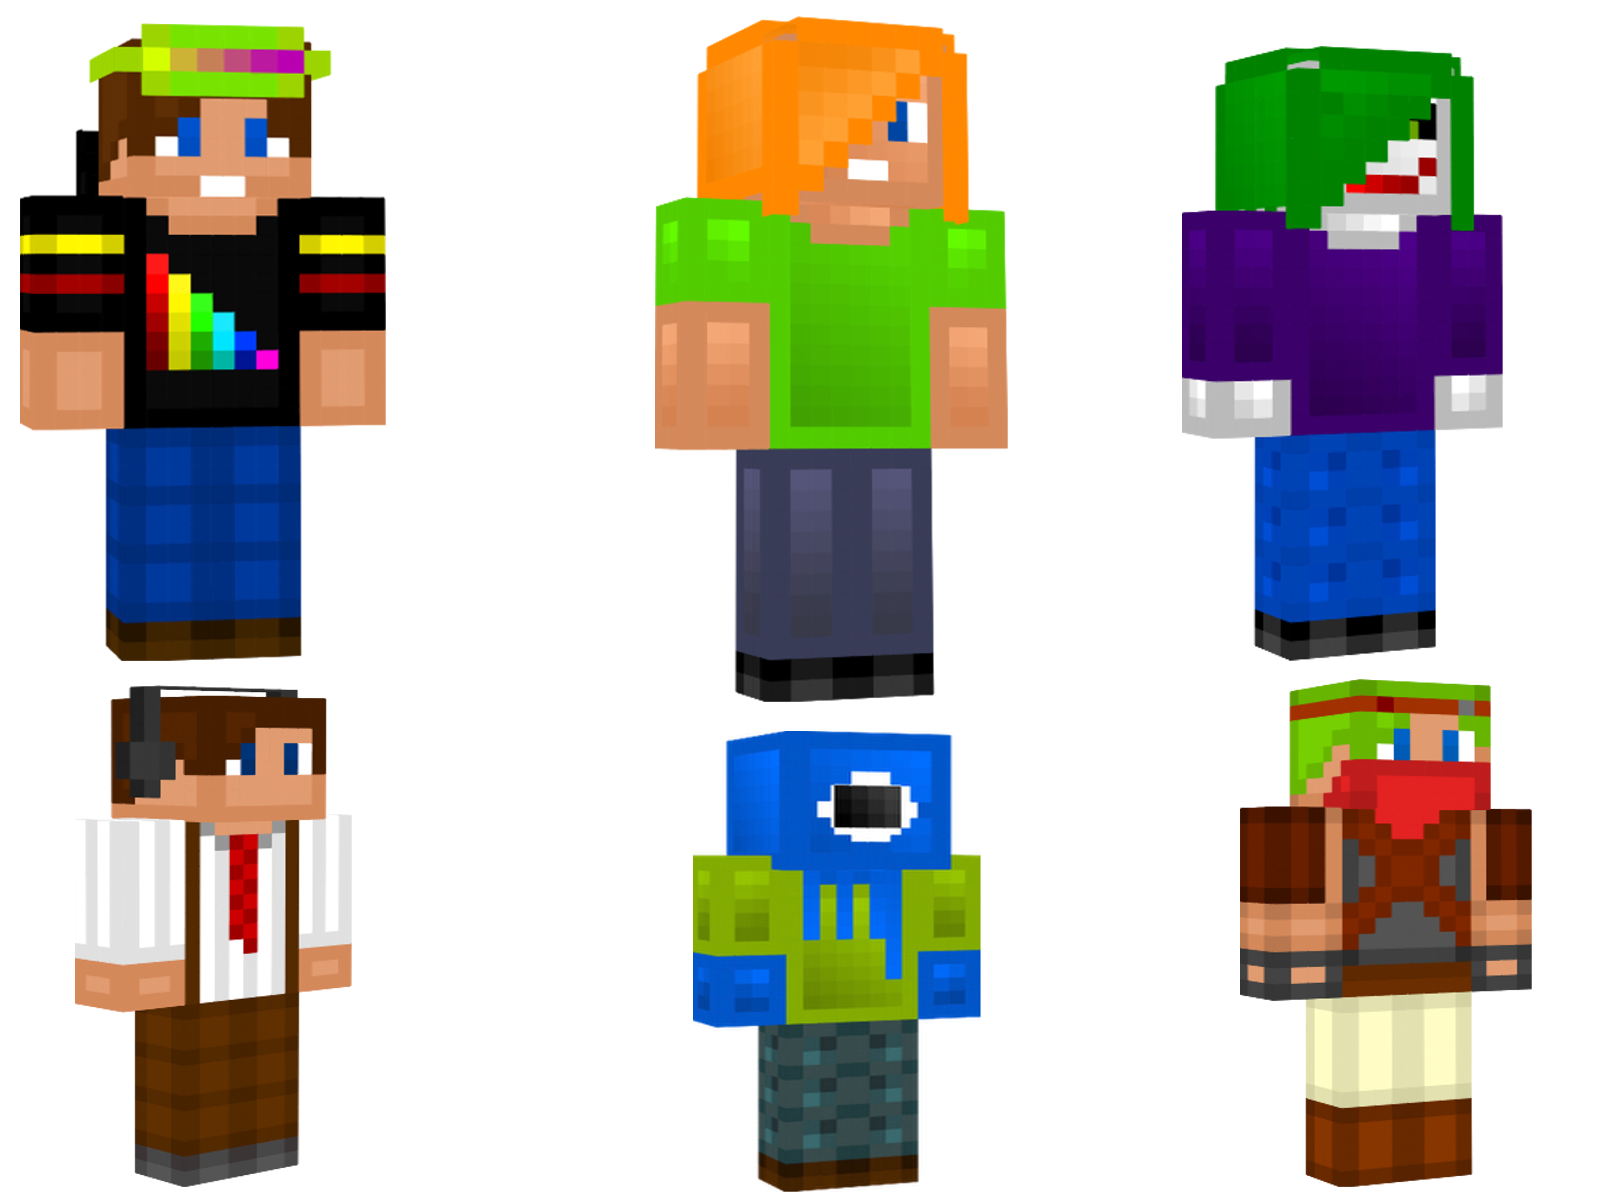 Minecraft pack clipart download images gallery for Free.